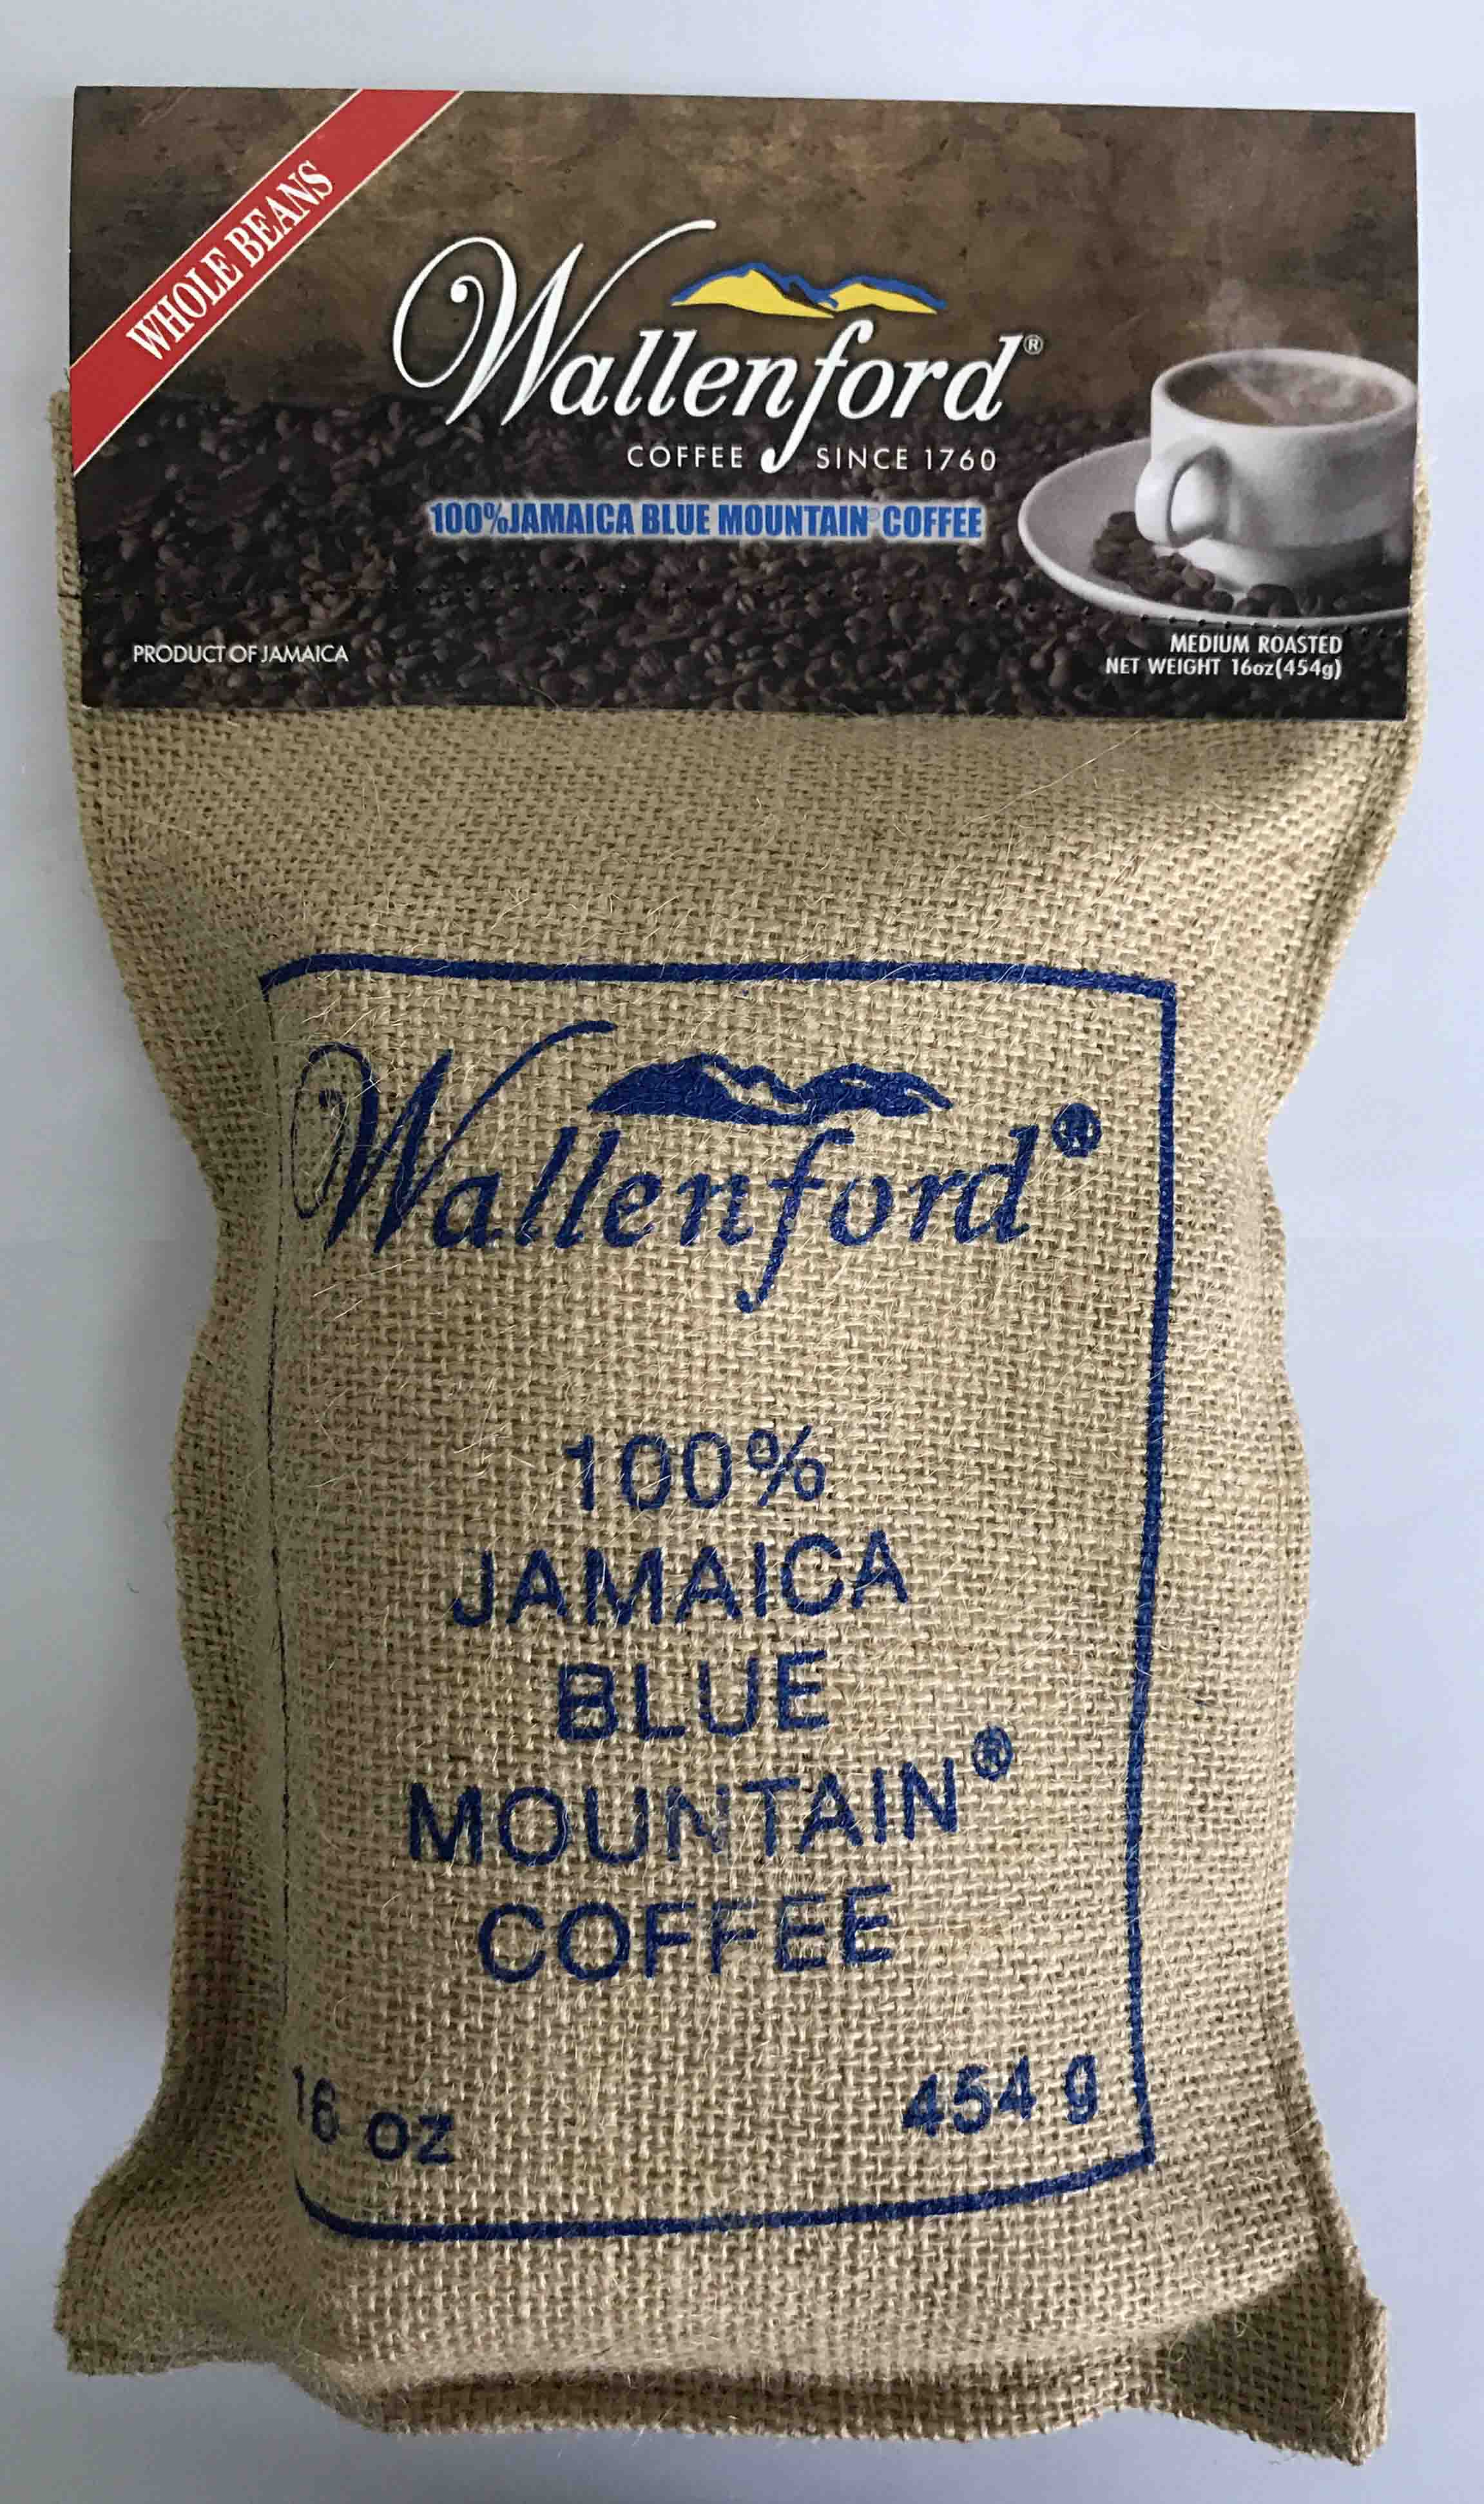 Agent direct selling original imported wallenford ㊣ wallenford Jamaica Blue Mountain coffee beans 454g